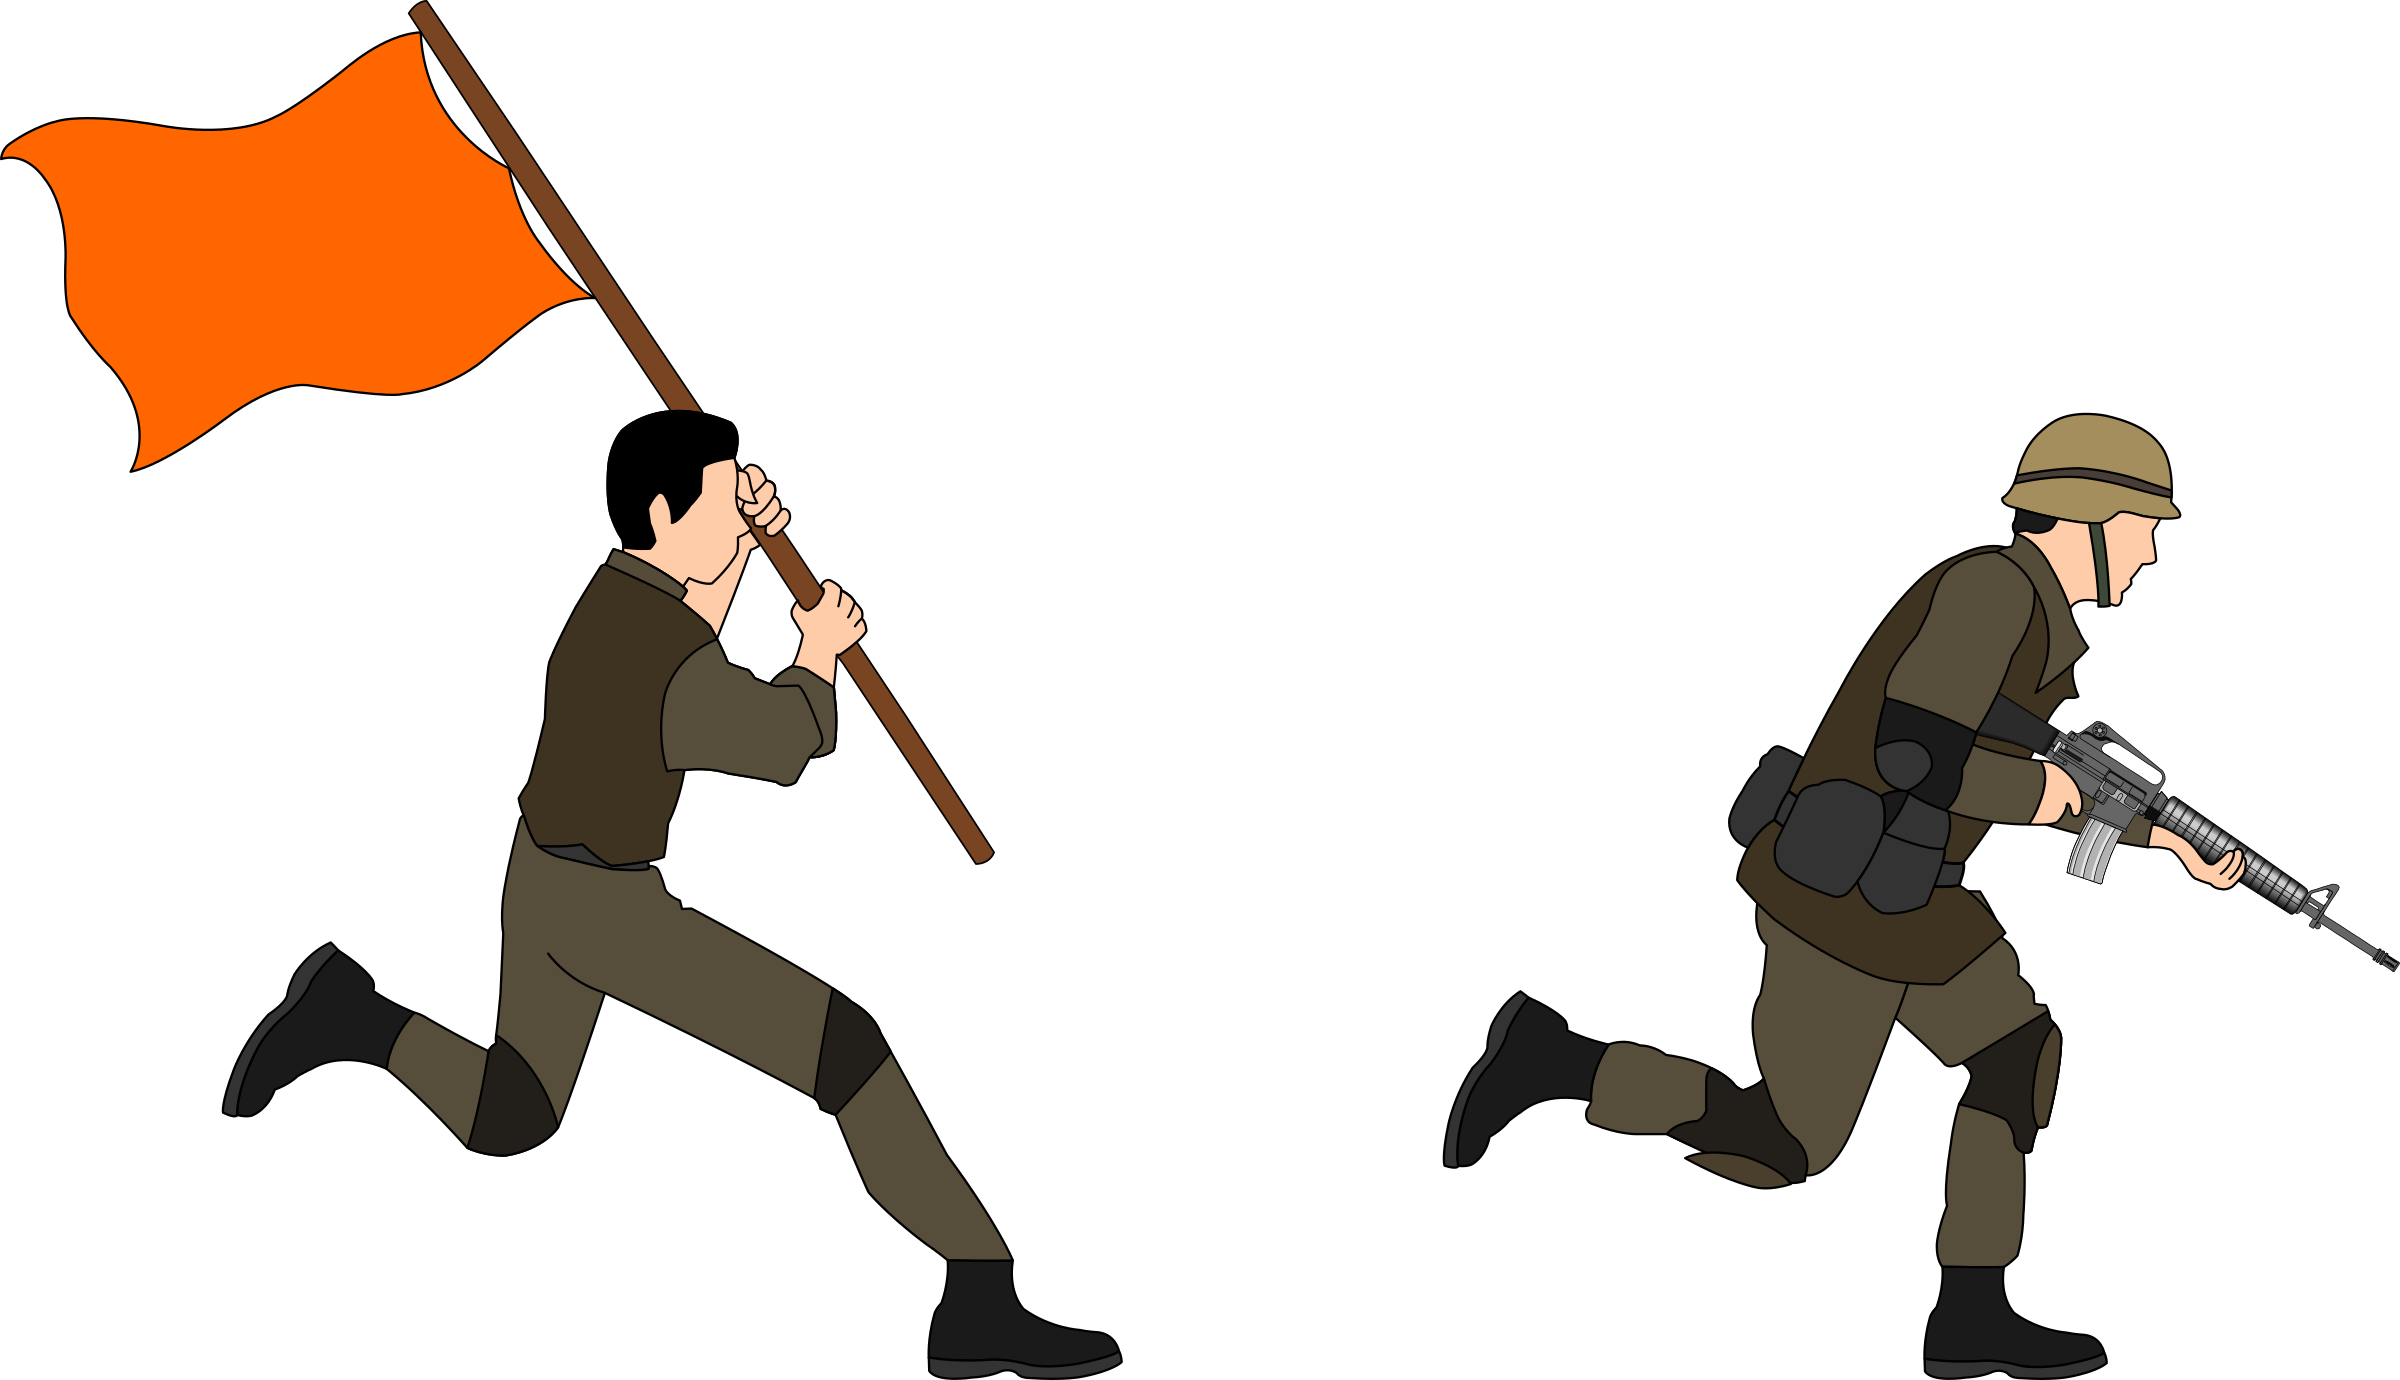 png library stock Charging big image png. Soldiers clipart